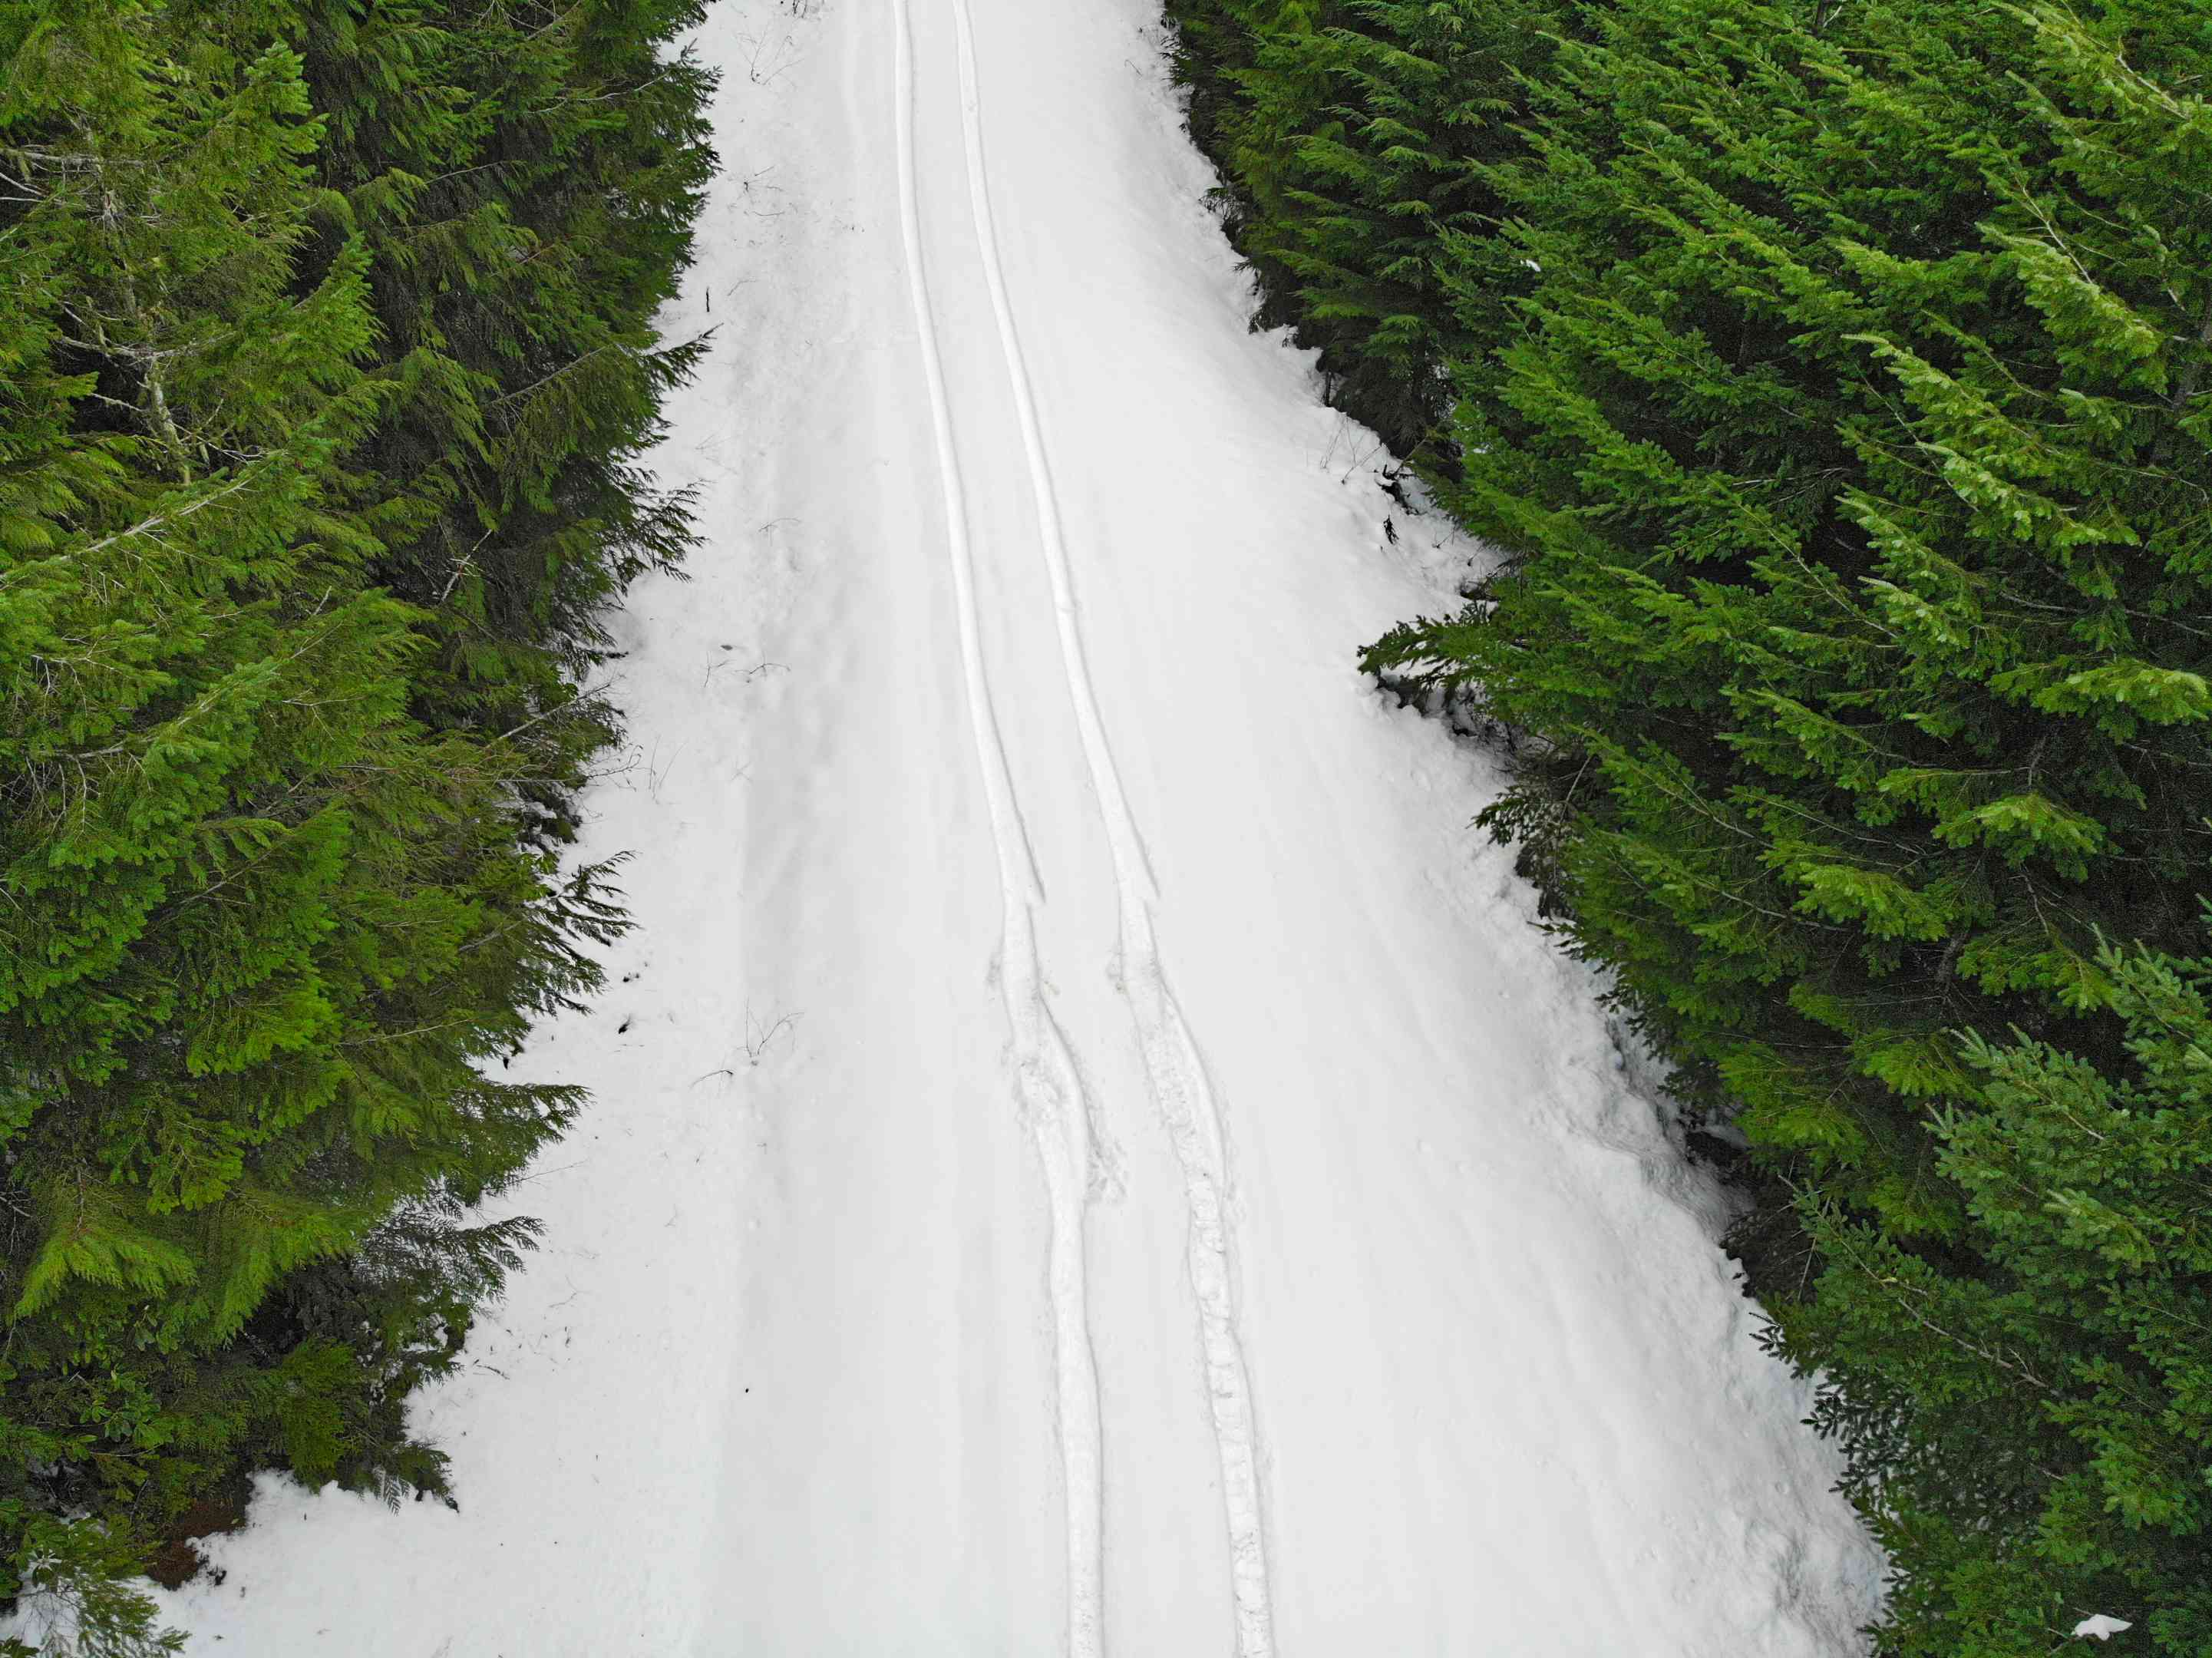 drone shot of tire tracks in snow surrounded by fir trees